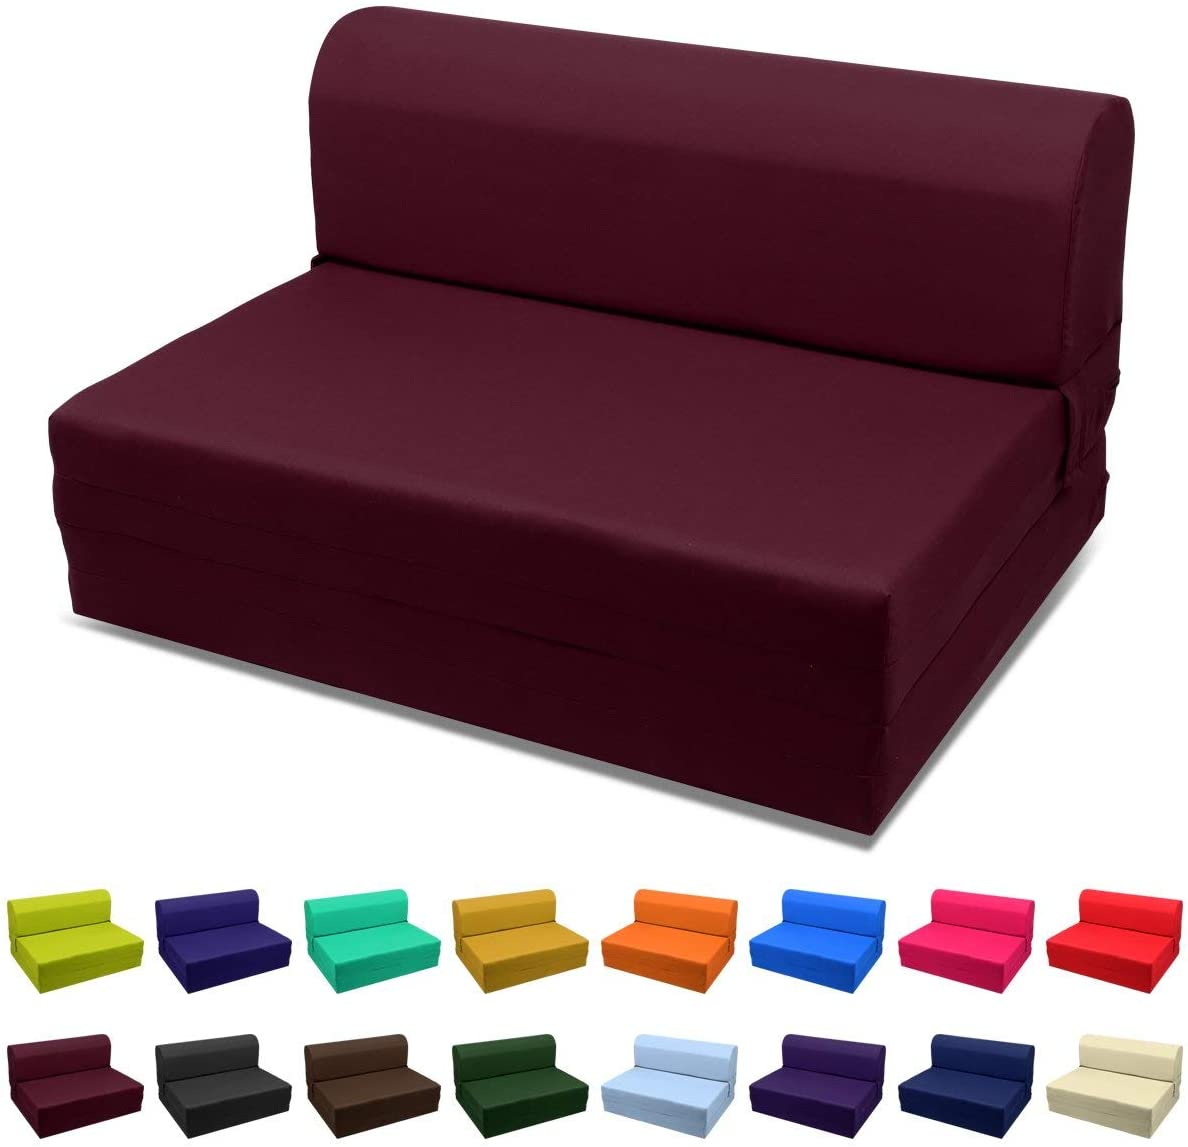 Magshion Futon Furniture Sleeper Chair Folding Foam Bed Choose Color Sized Single Twin Or Full Twin 5x36x70 Burgundy Kitchen Dining Amazon Com